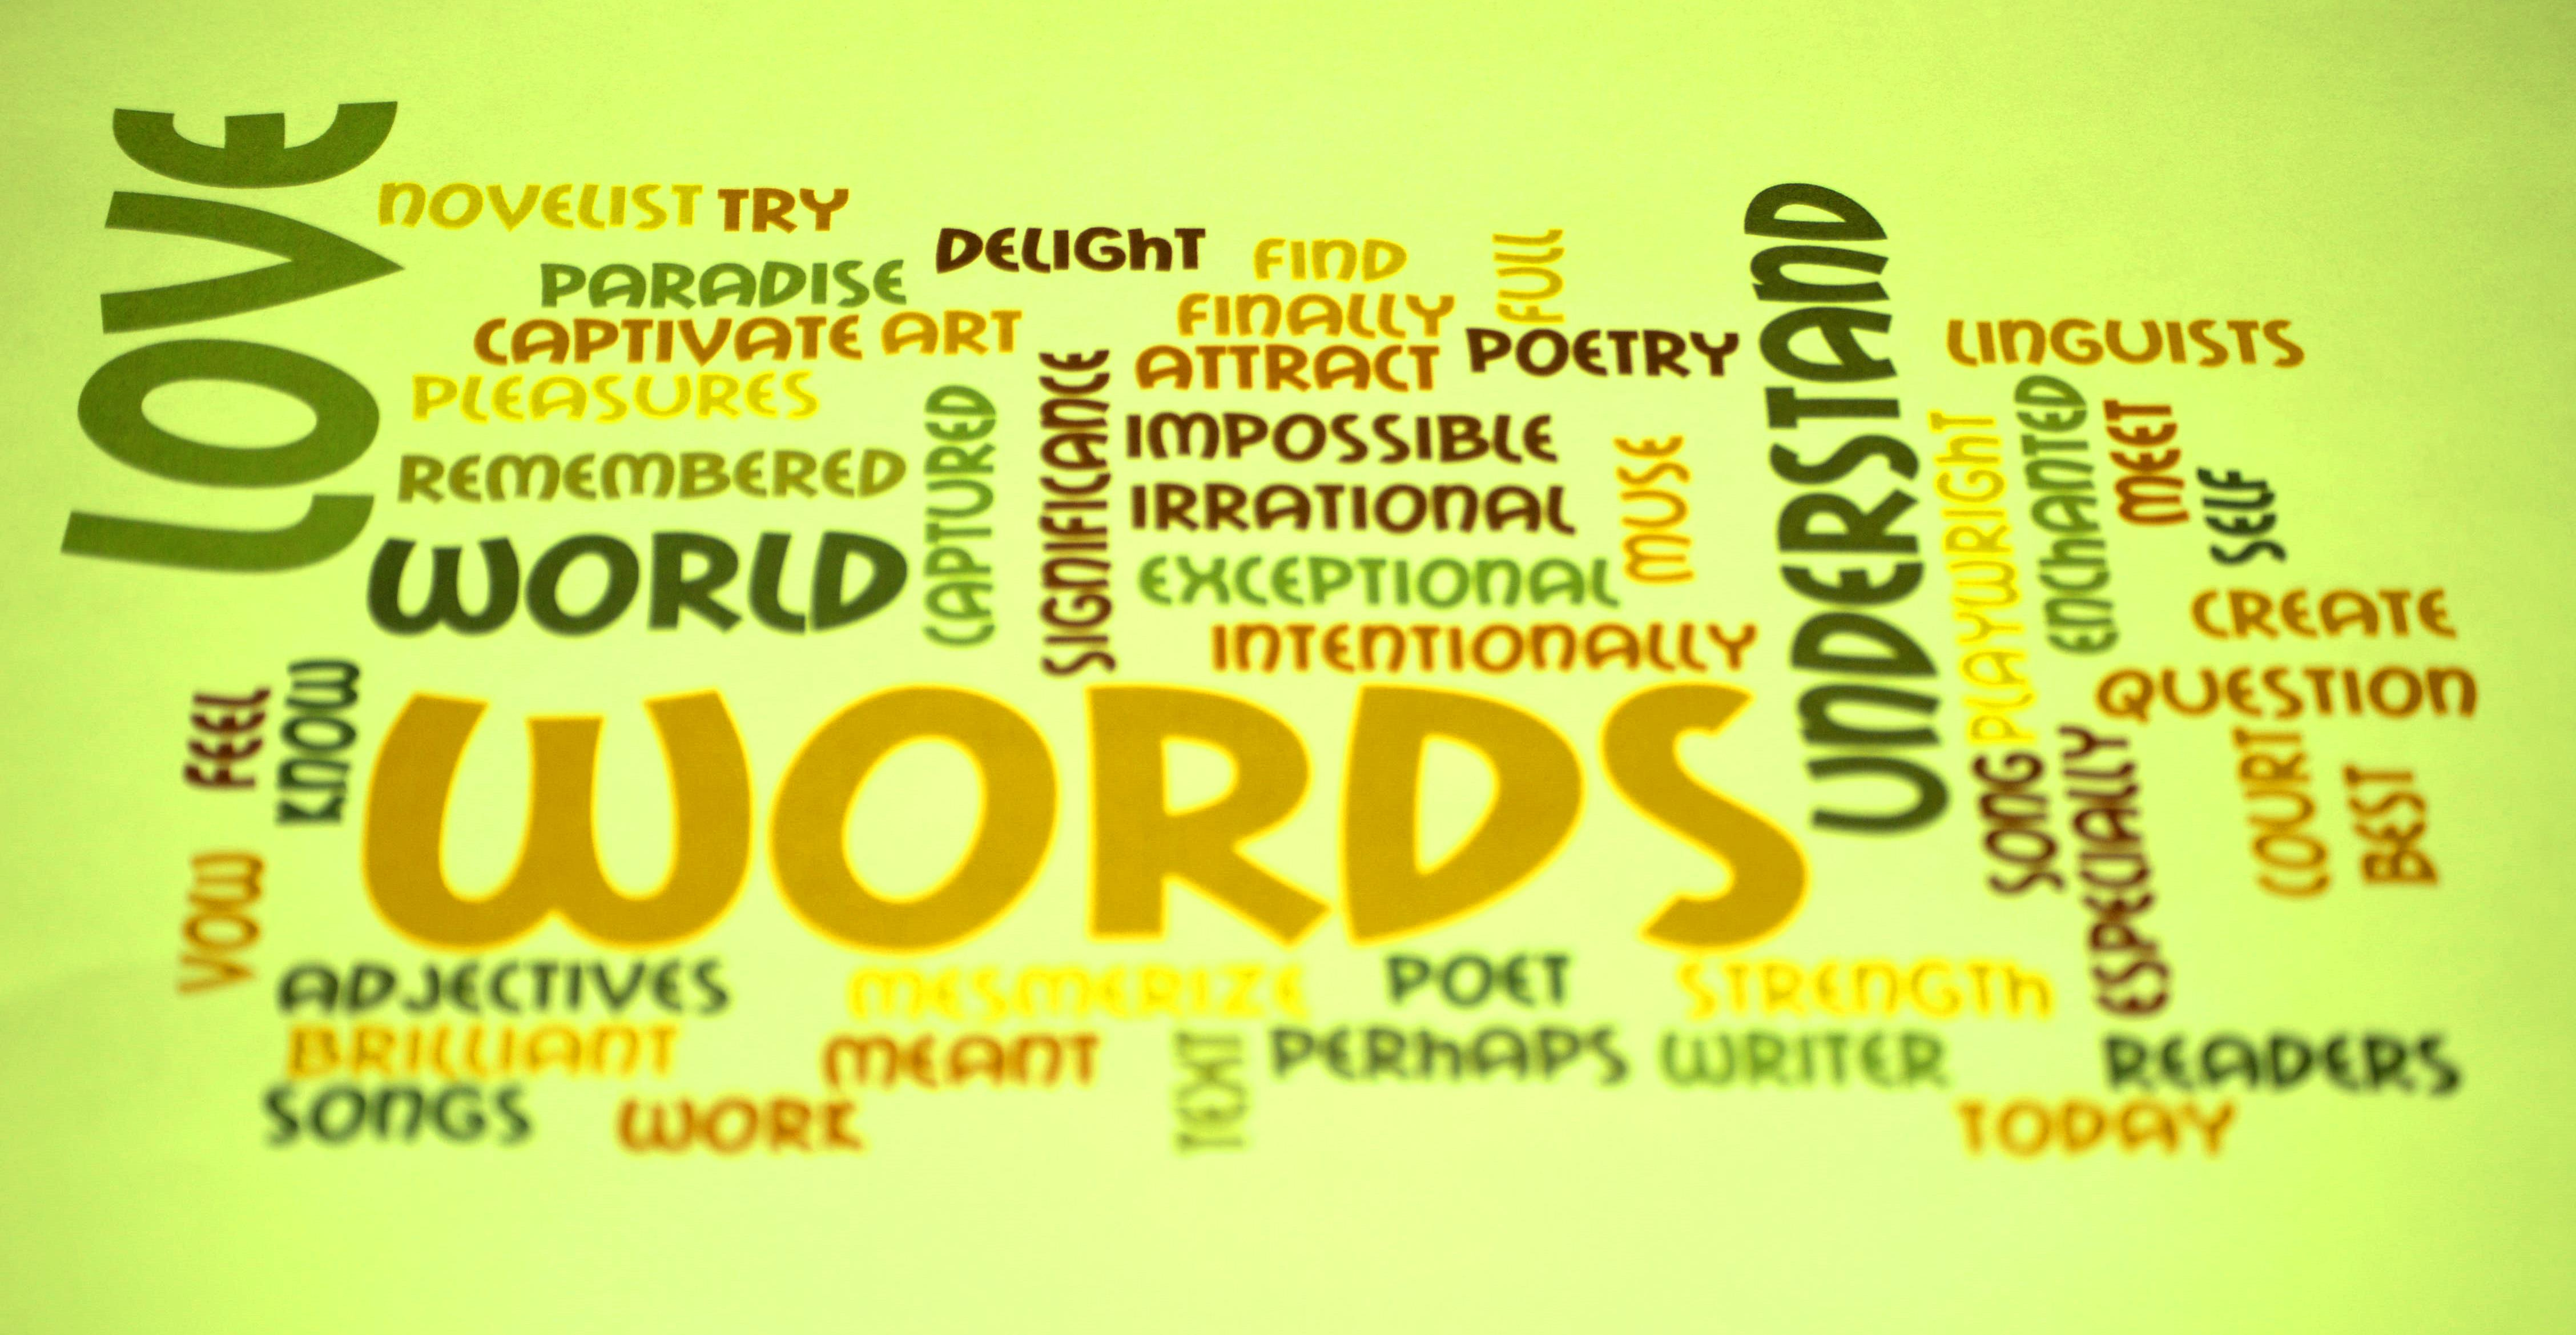 Paradise of words